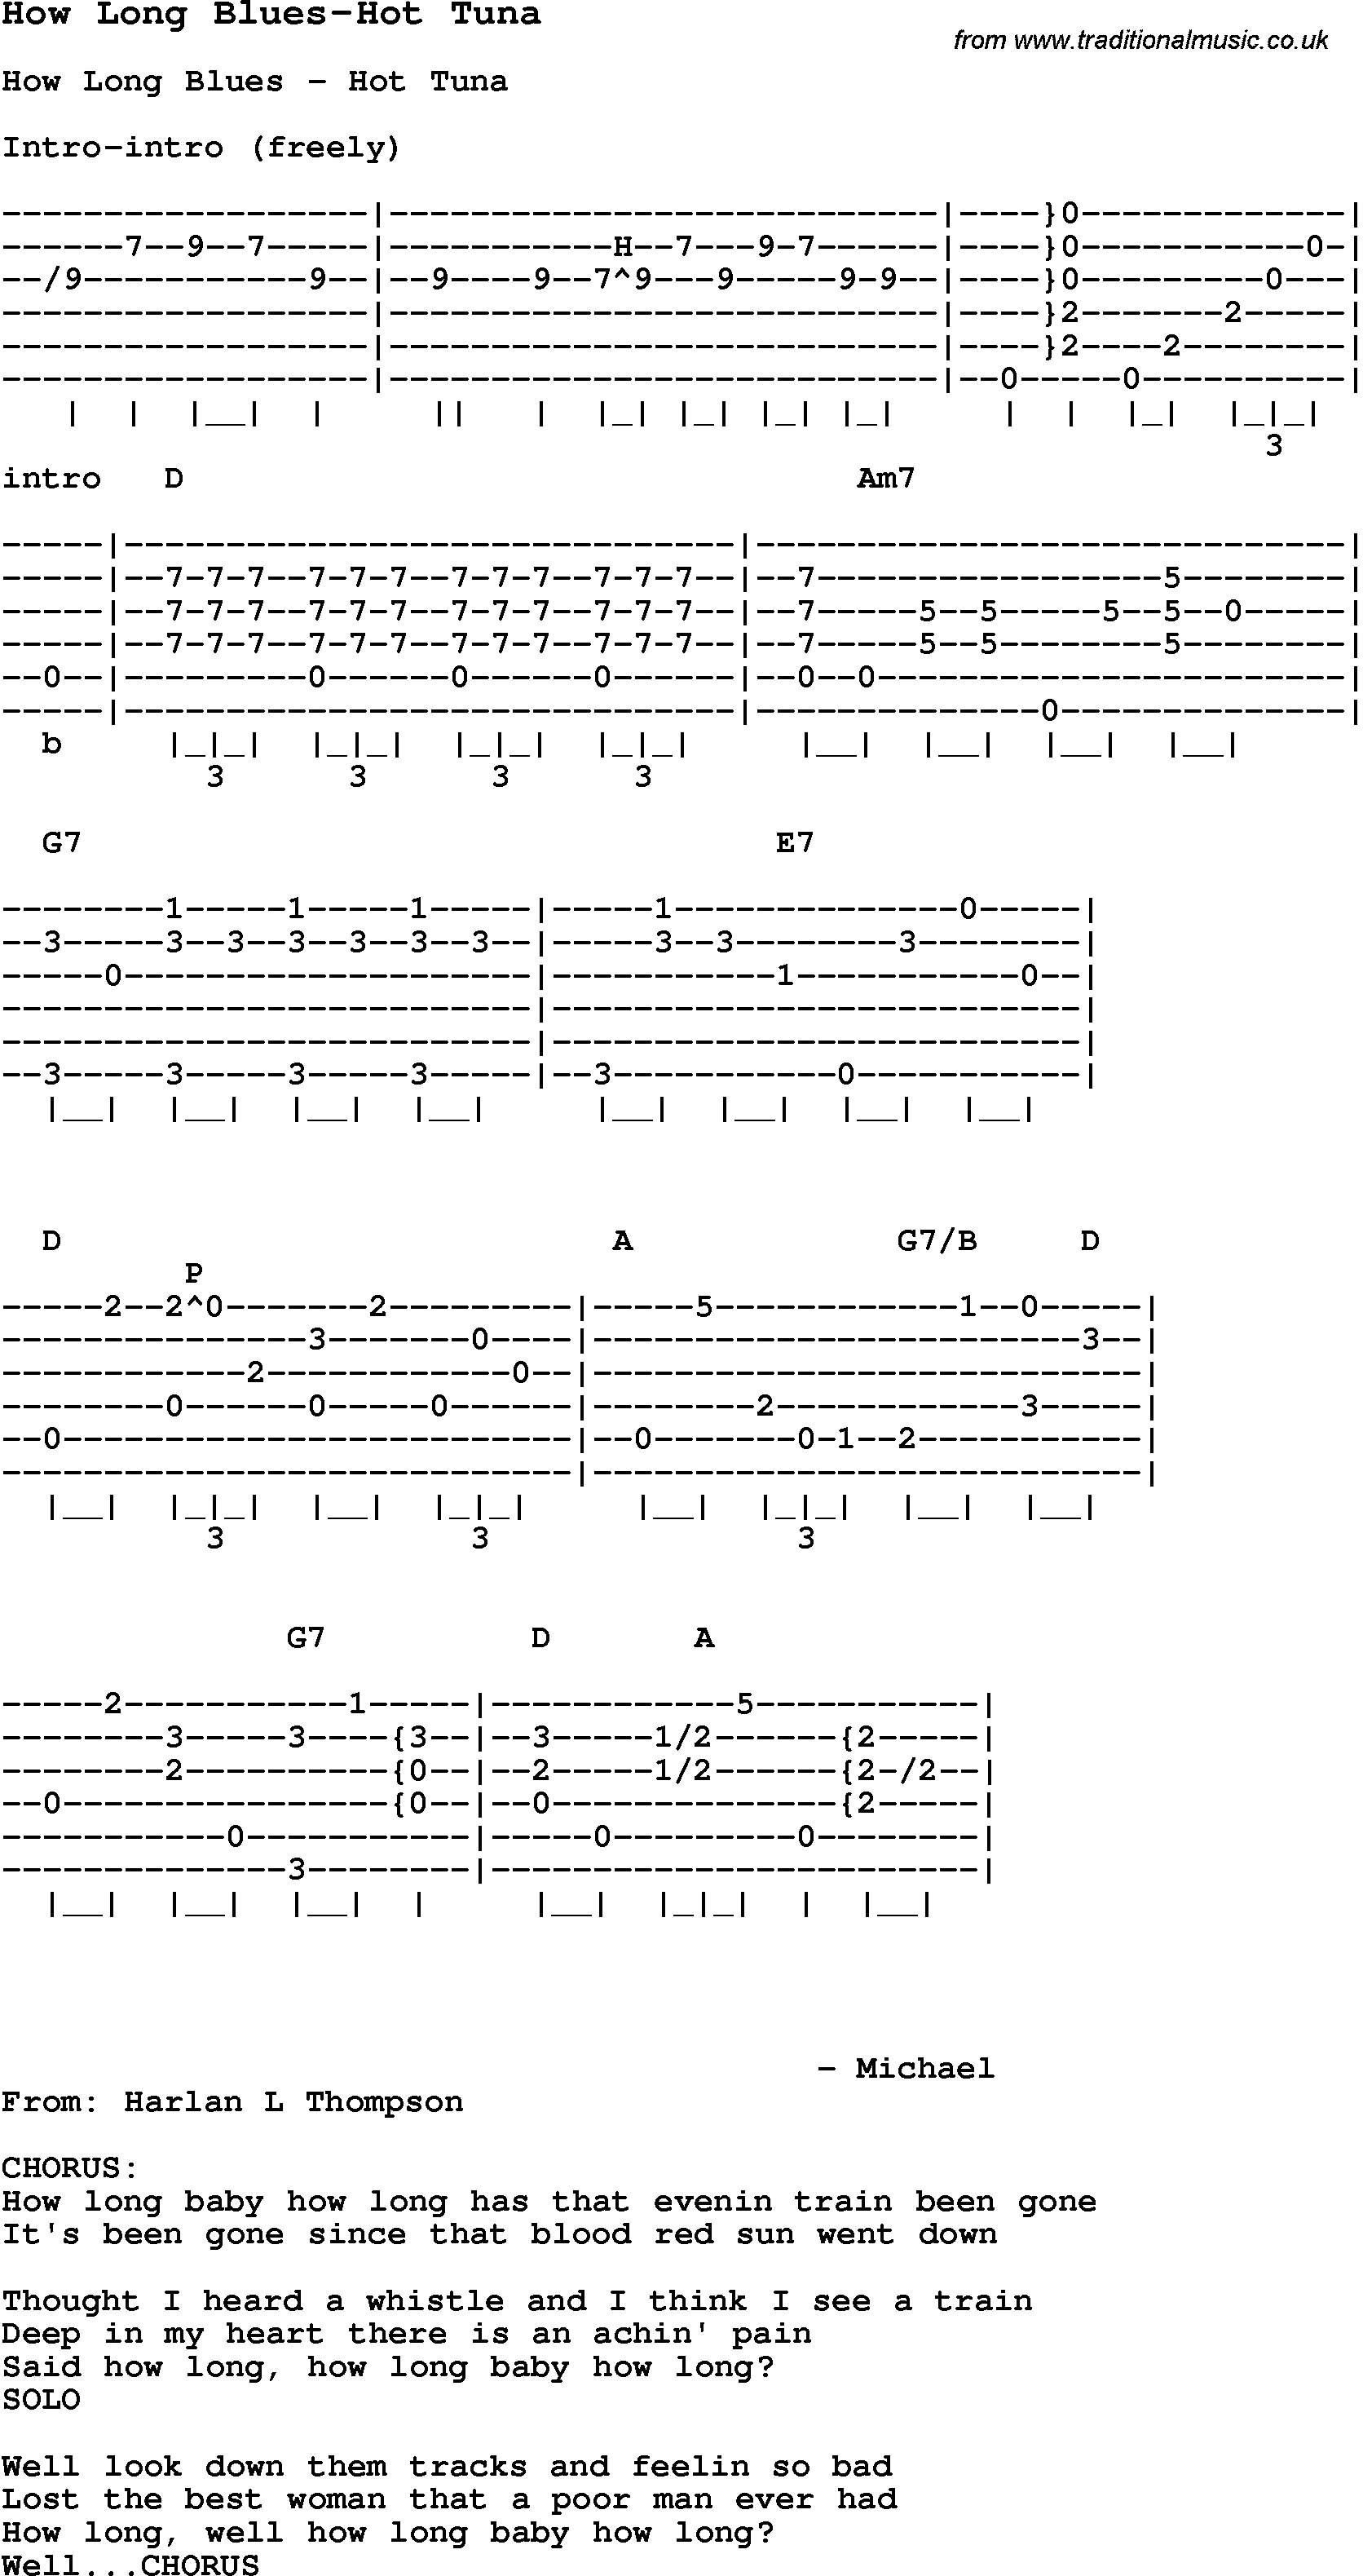 Blues Guitar Lesson For How Long Blues Hot Tuna With Chords Tabs